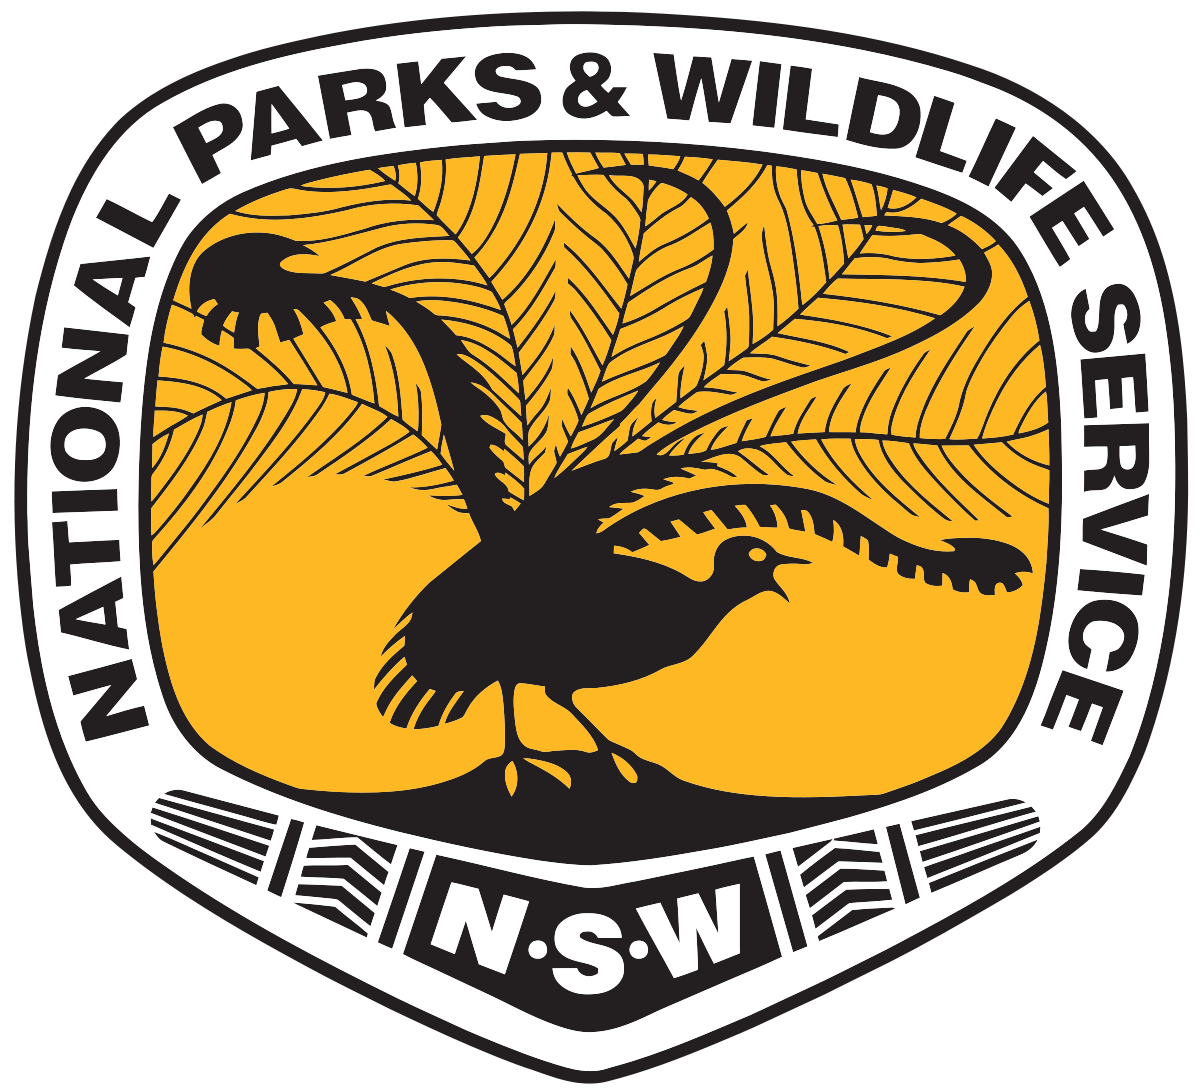 NSW Parks & Wildlife